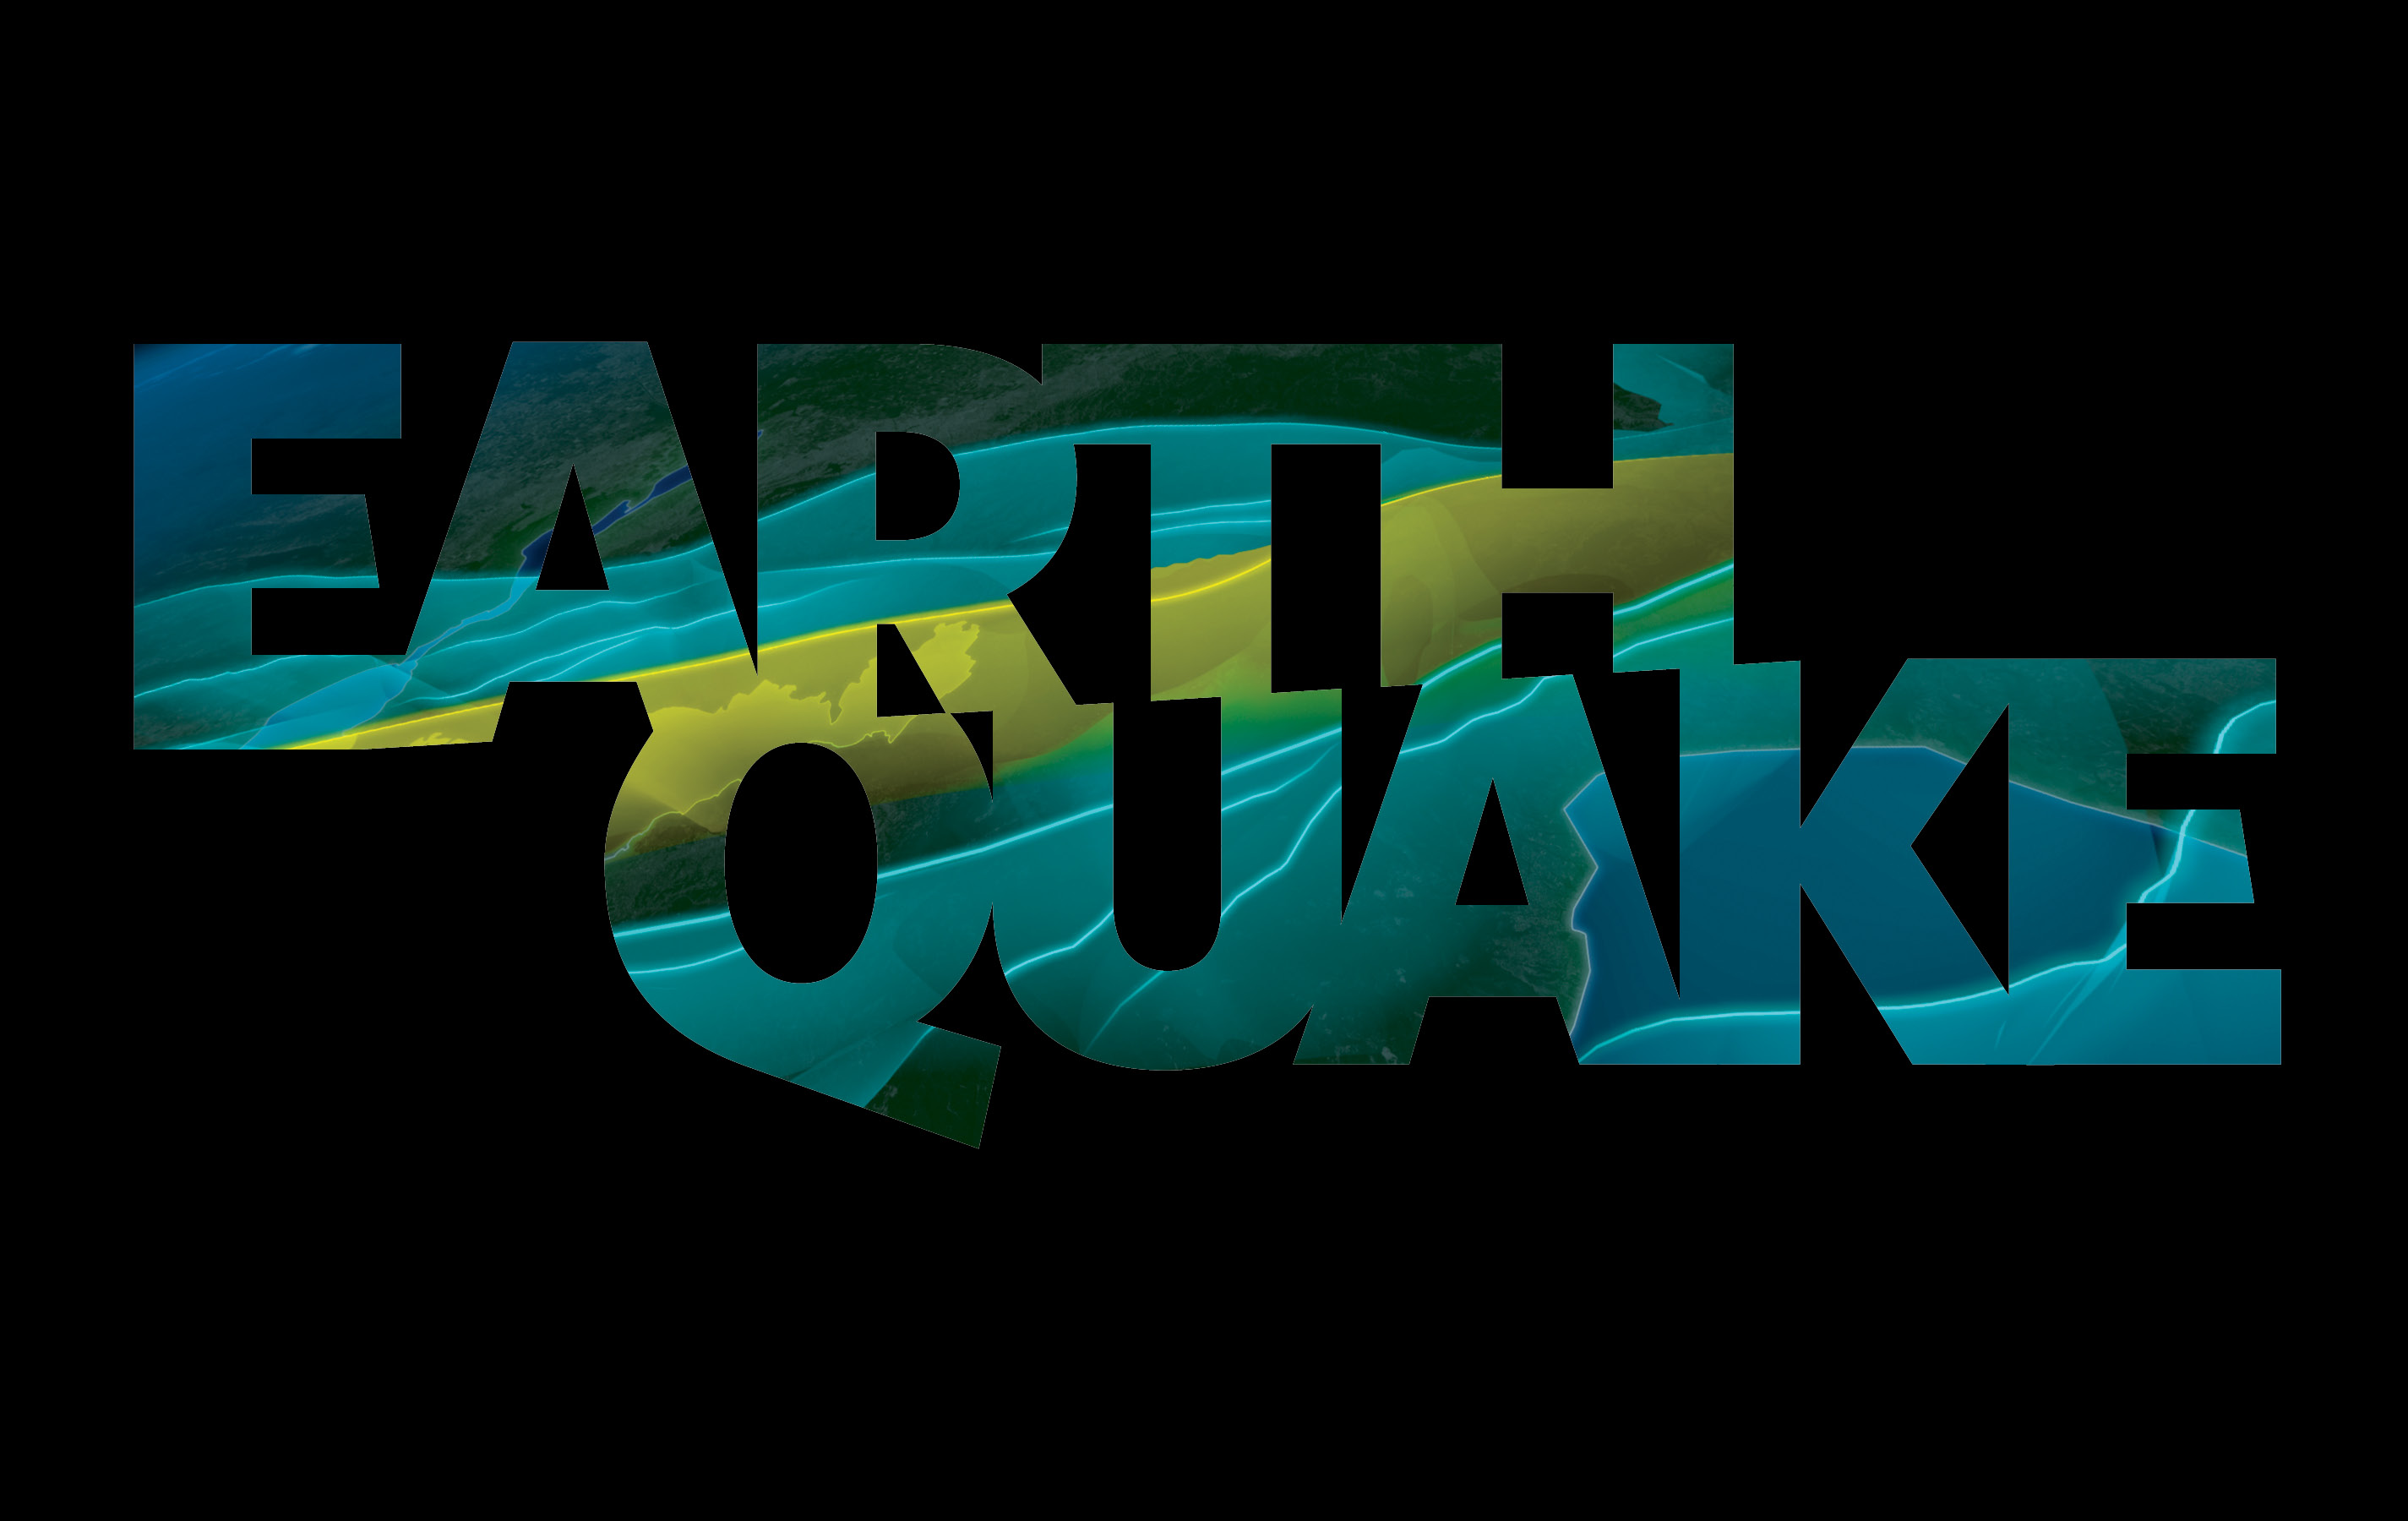 earthquake planetarium show opens on may 26  2012 at the california academy of sciences